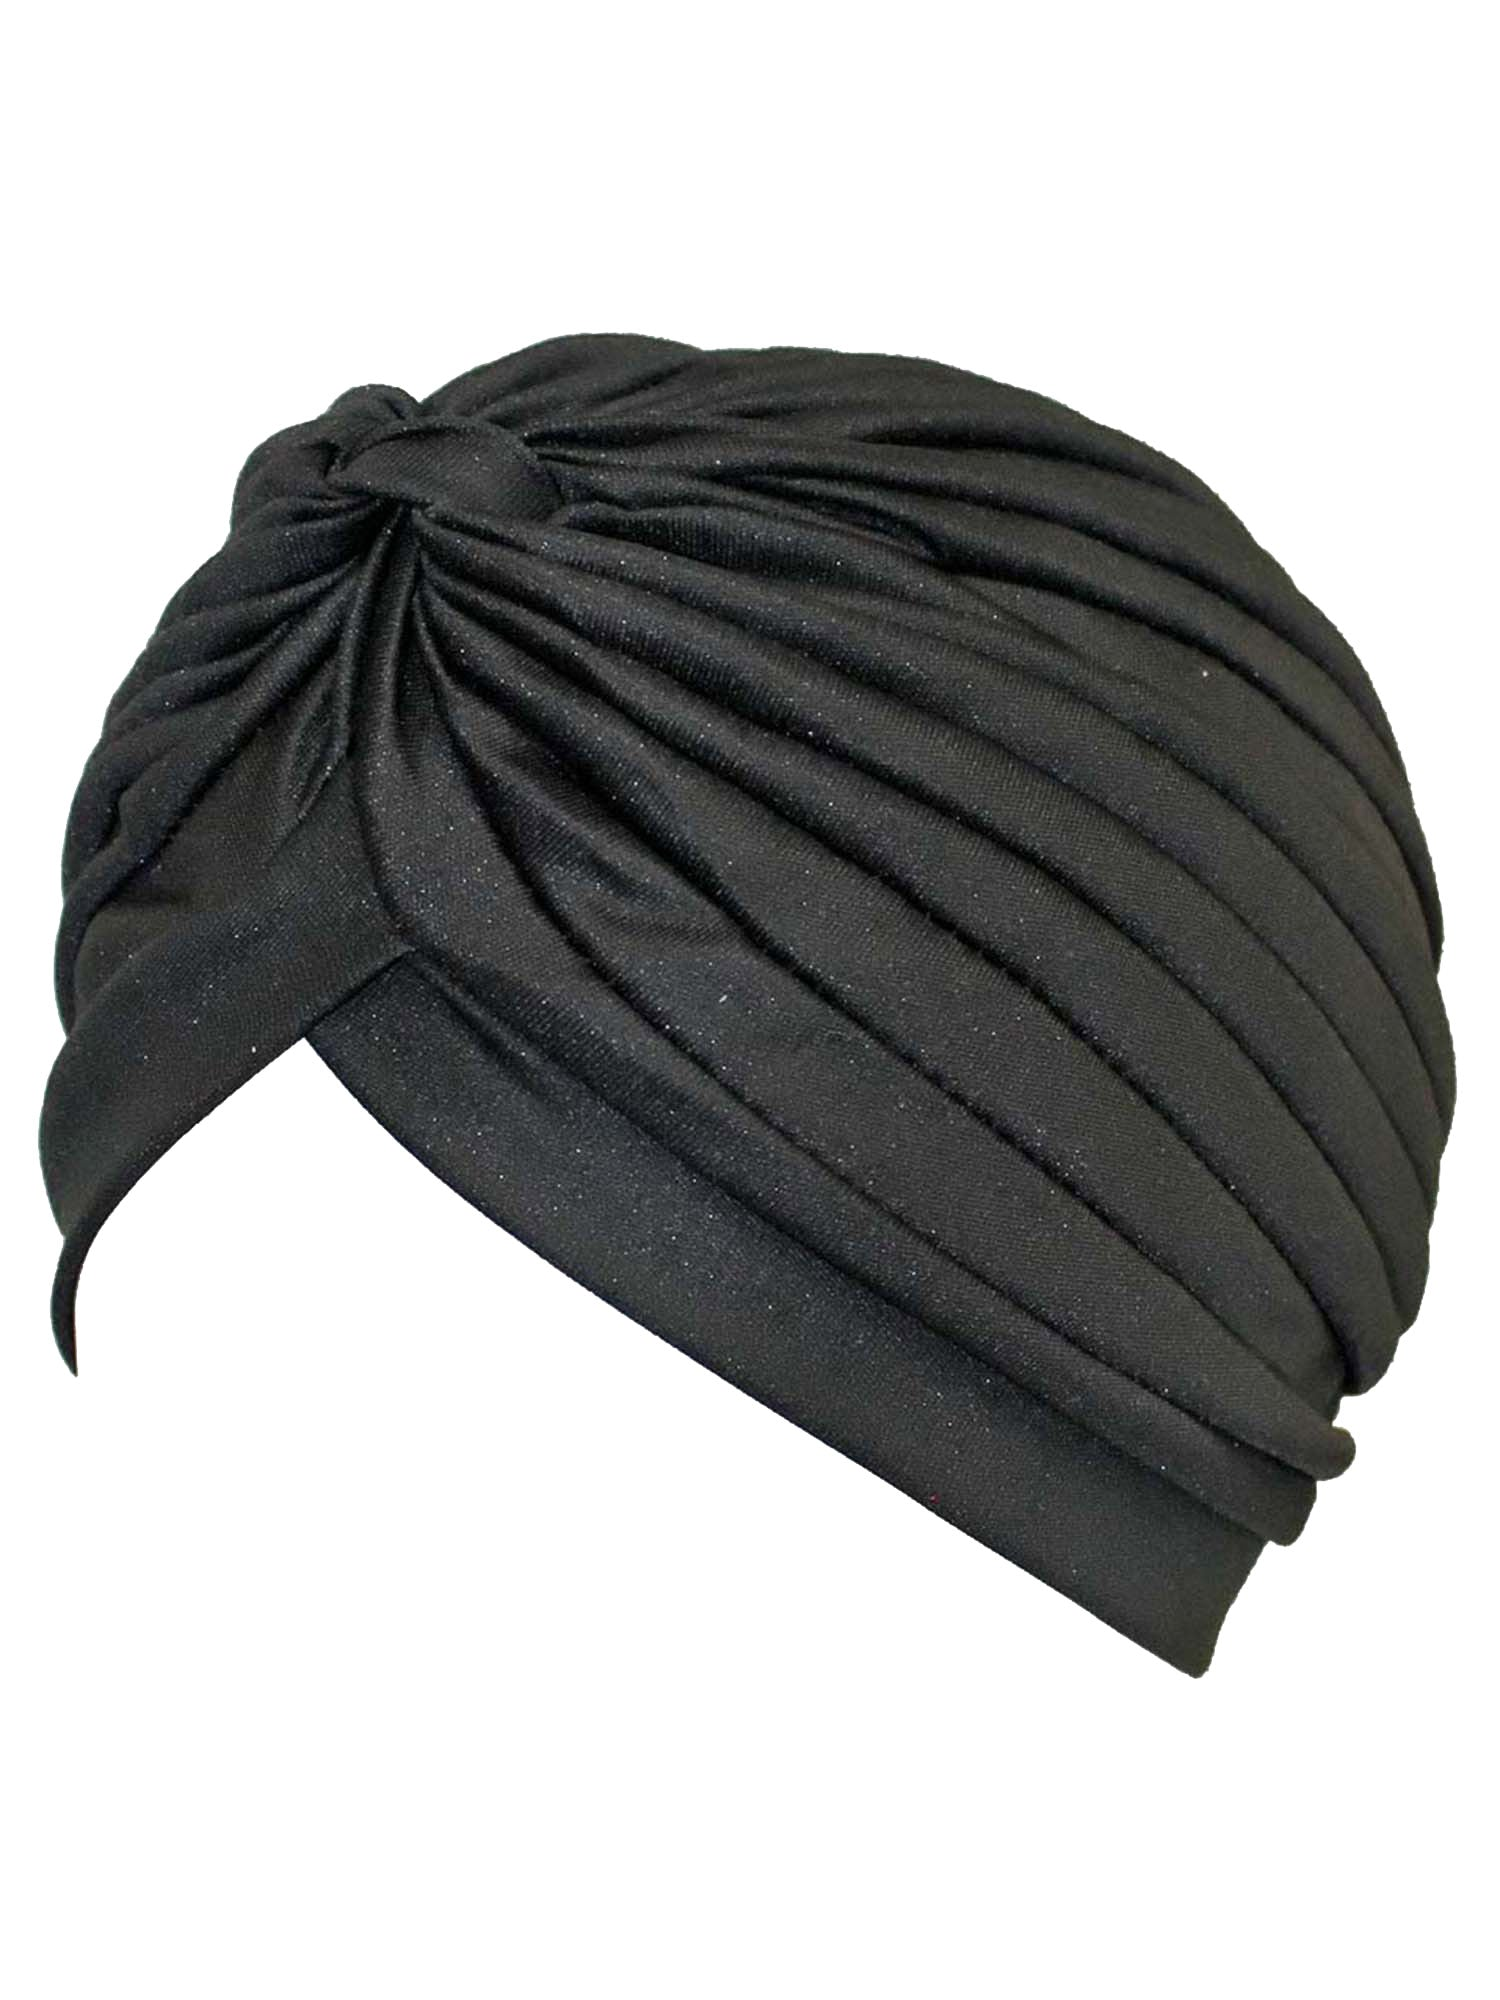 Black Spandex Pleated Turban Head Wrap For Women